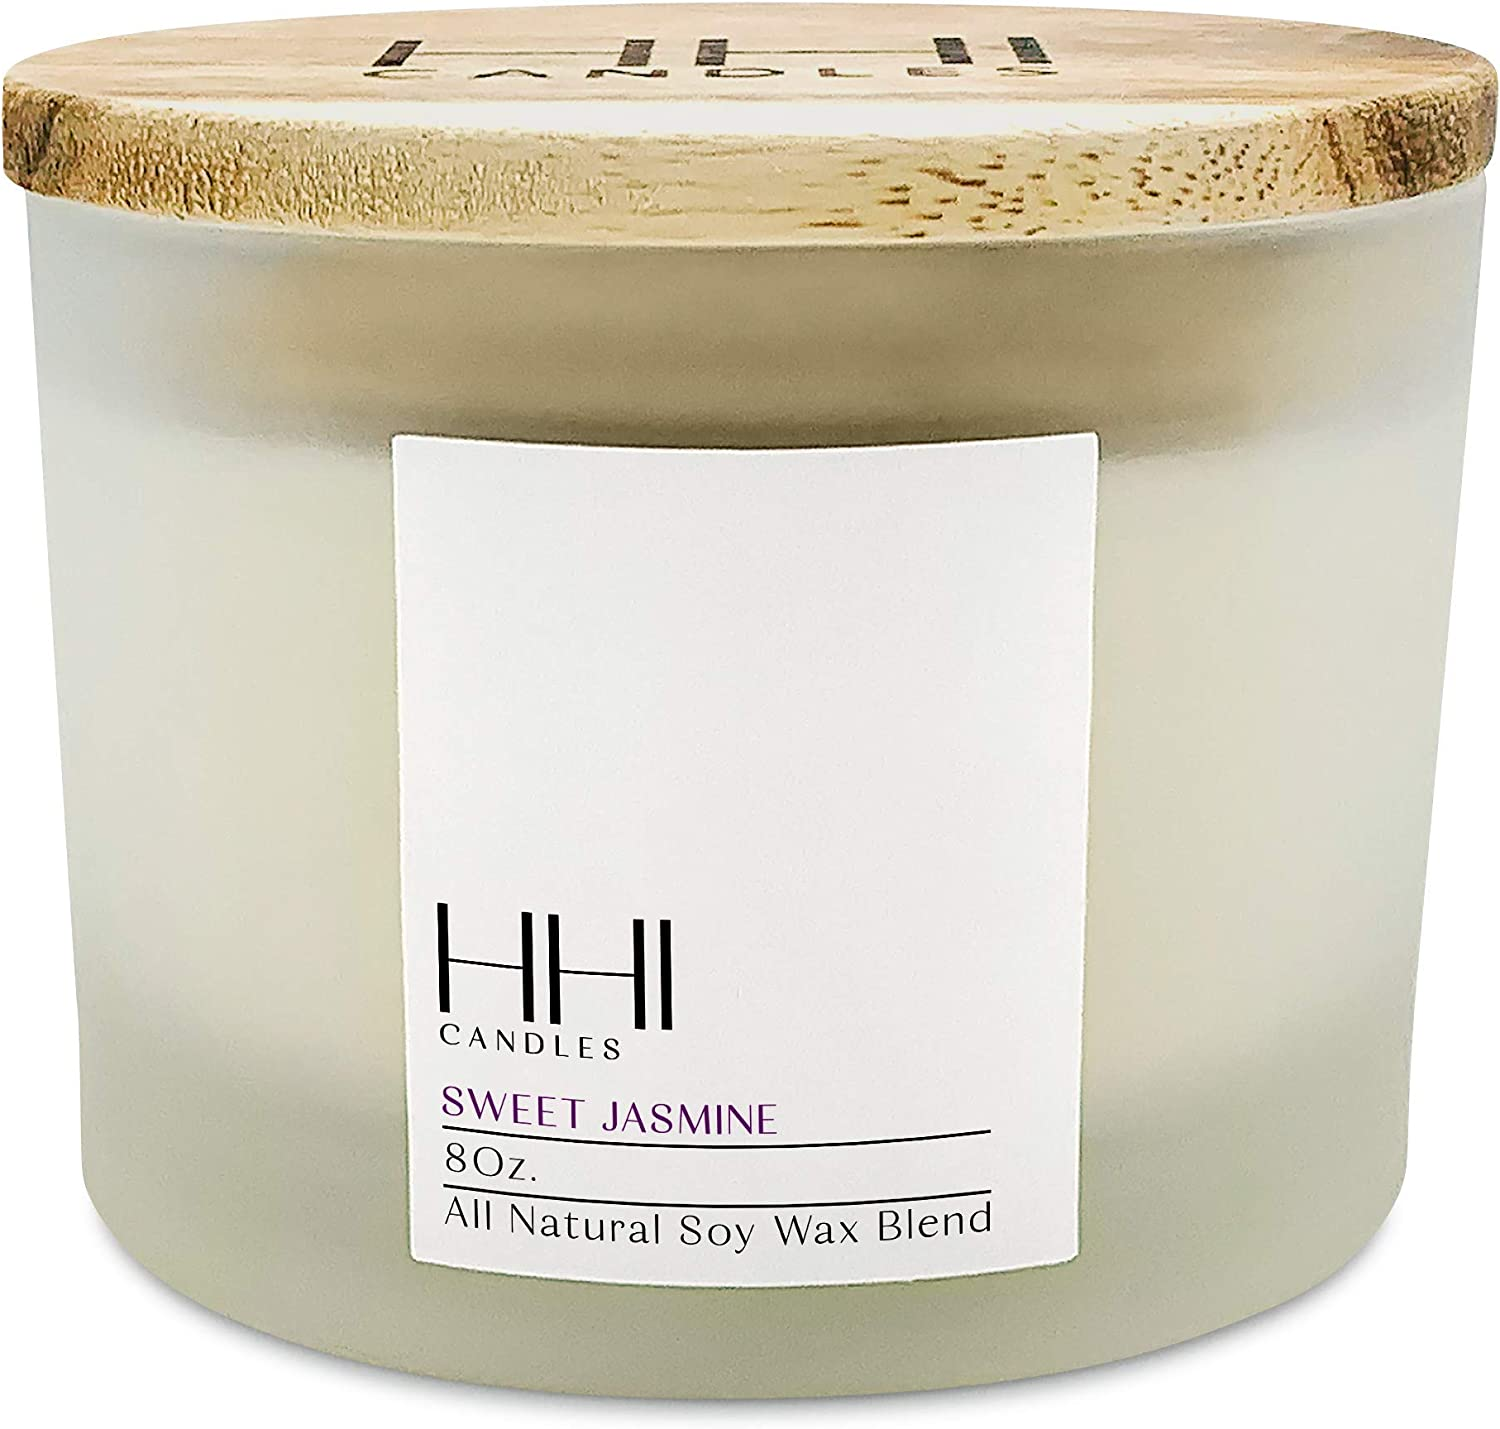 HHI Candles Sweet Jasmine Scented Candles. All Natural Soy Wax Candle with Thick Frosted Glass and Bamboo Wood Lid. 1 Wick Candle Size 8 Oz. Product Name